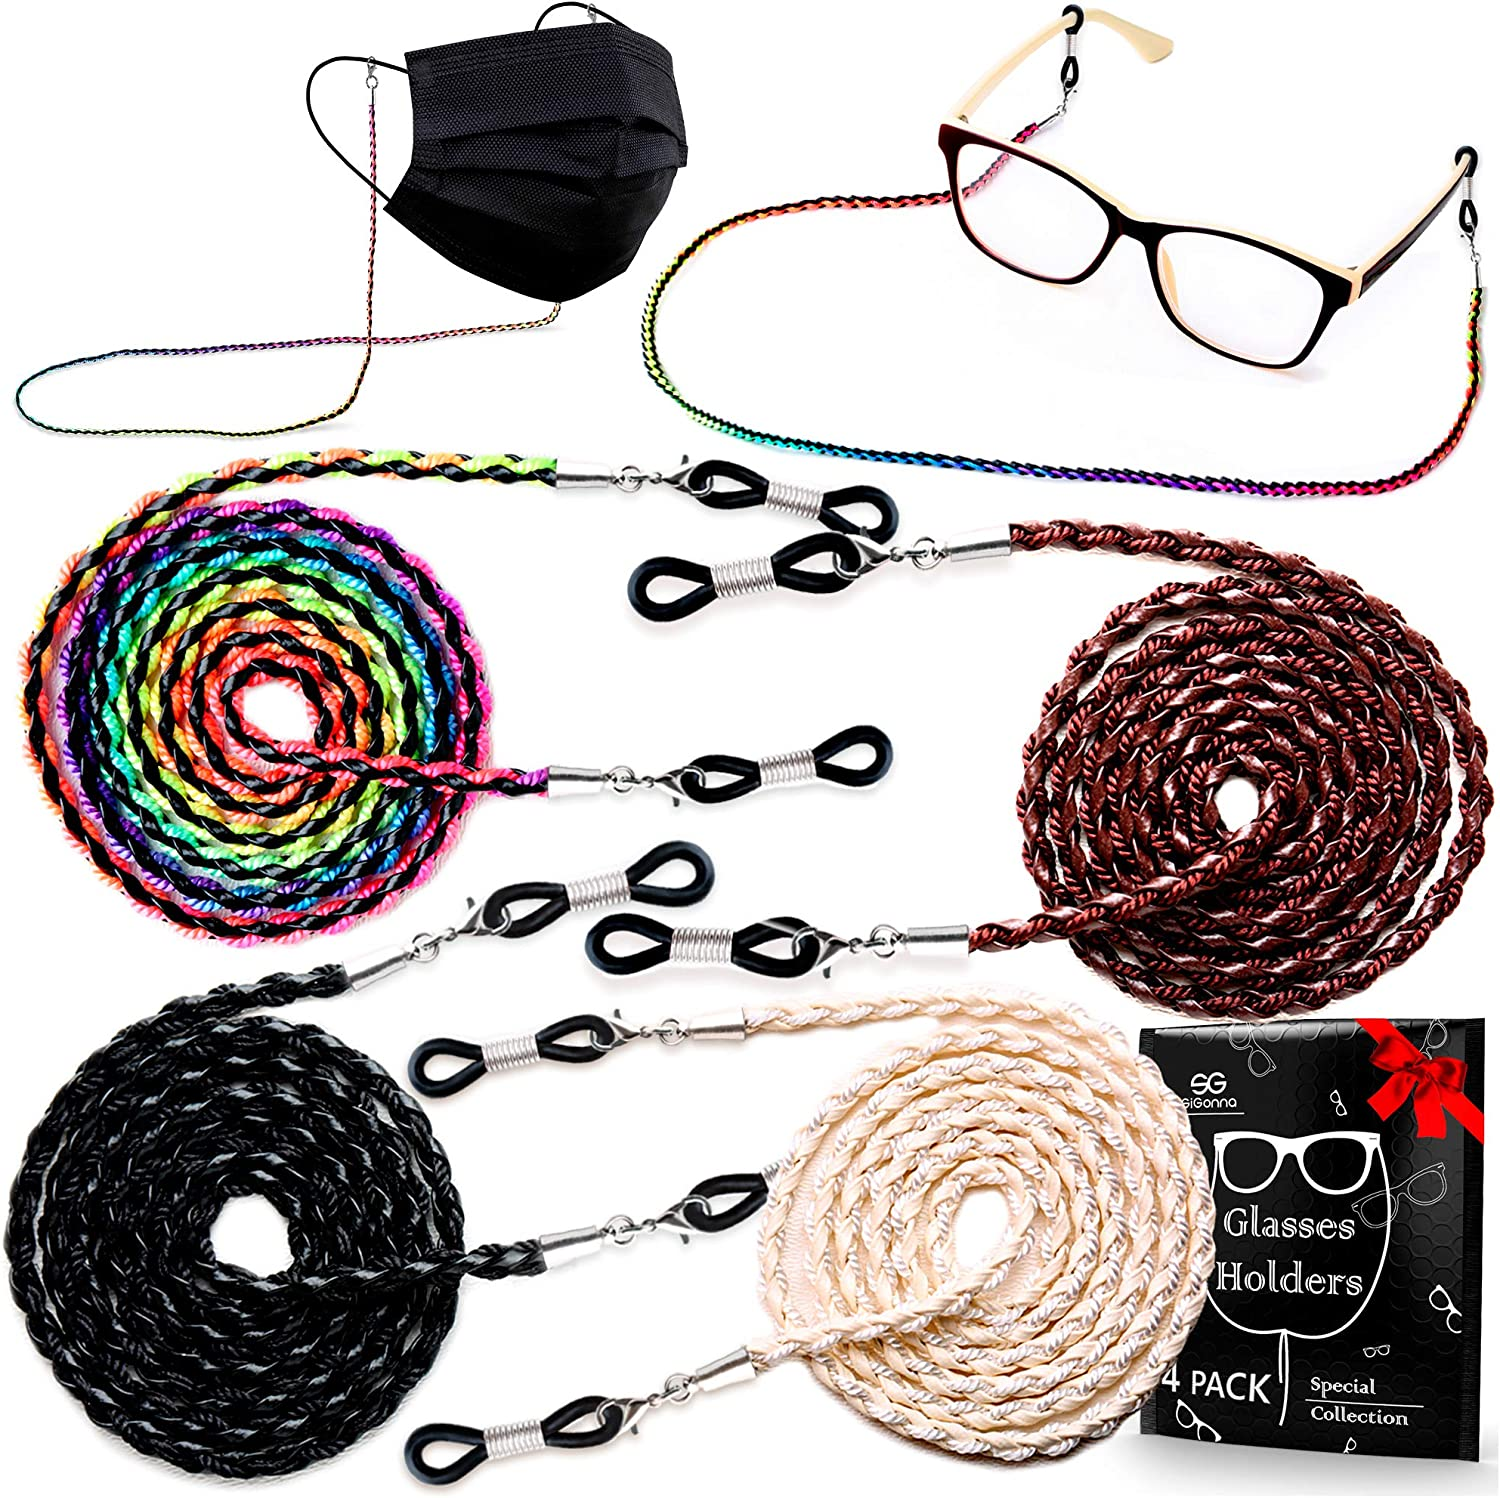 Jewelry Eyeglass Chains for Women Eyeglasses Holder Clip Glasses Strap Grips Lanyard Set of 2